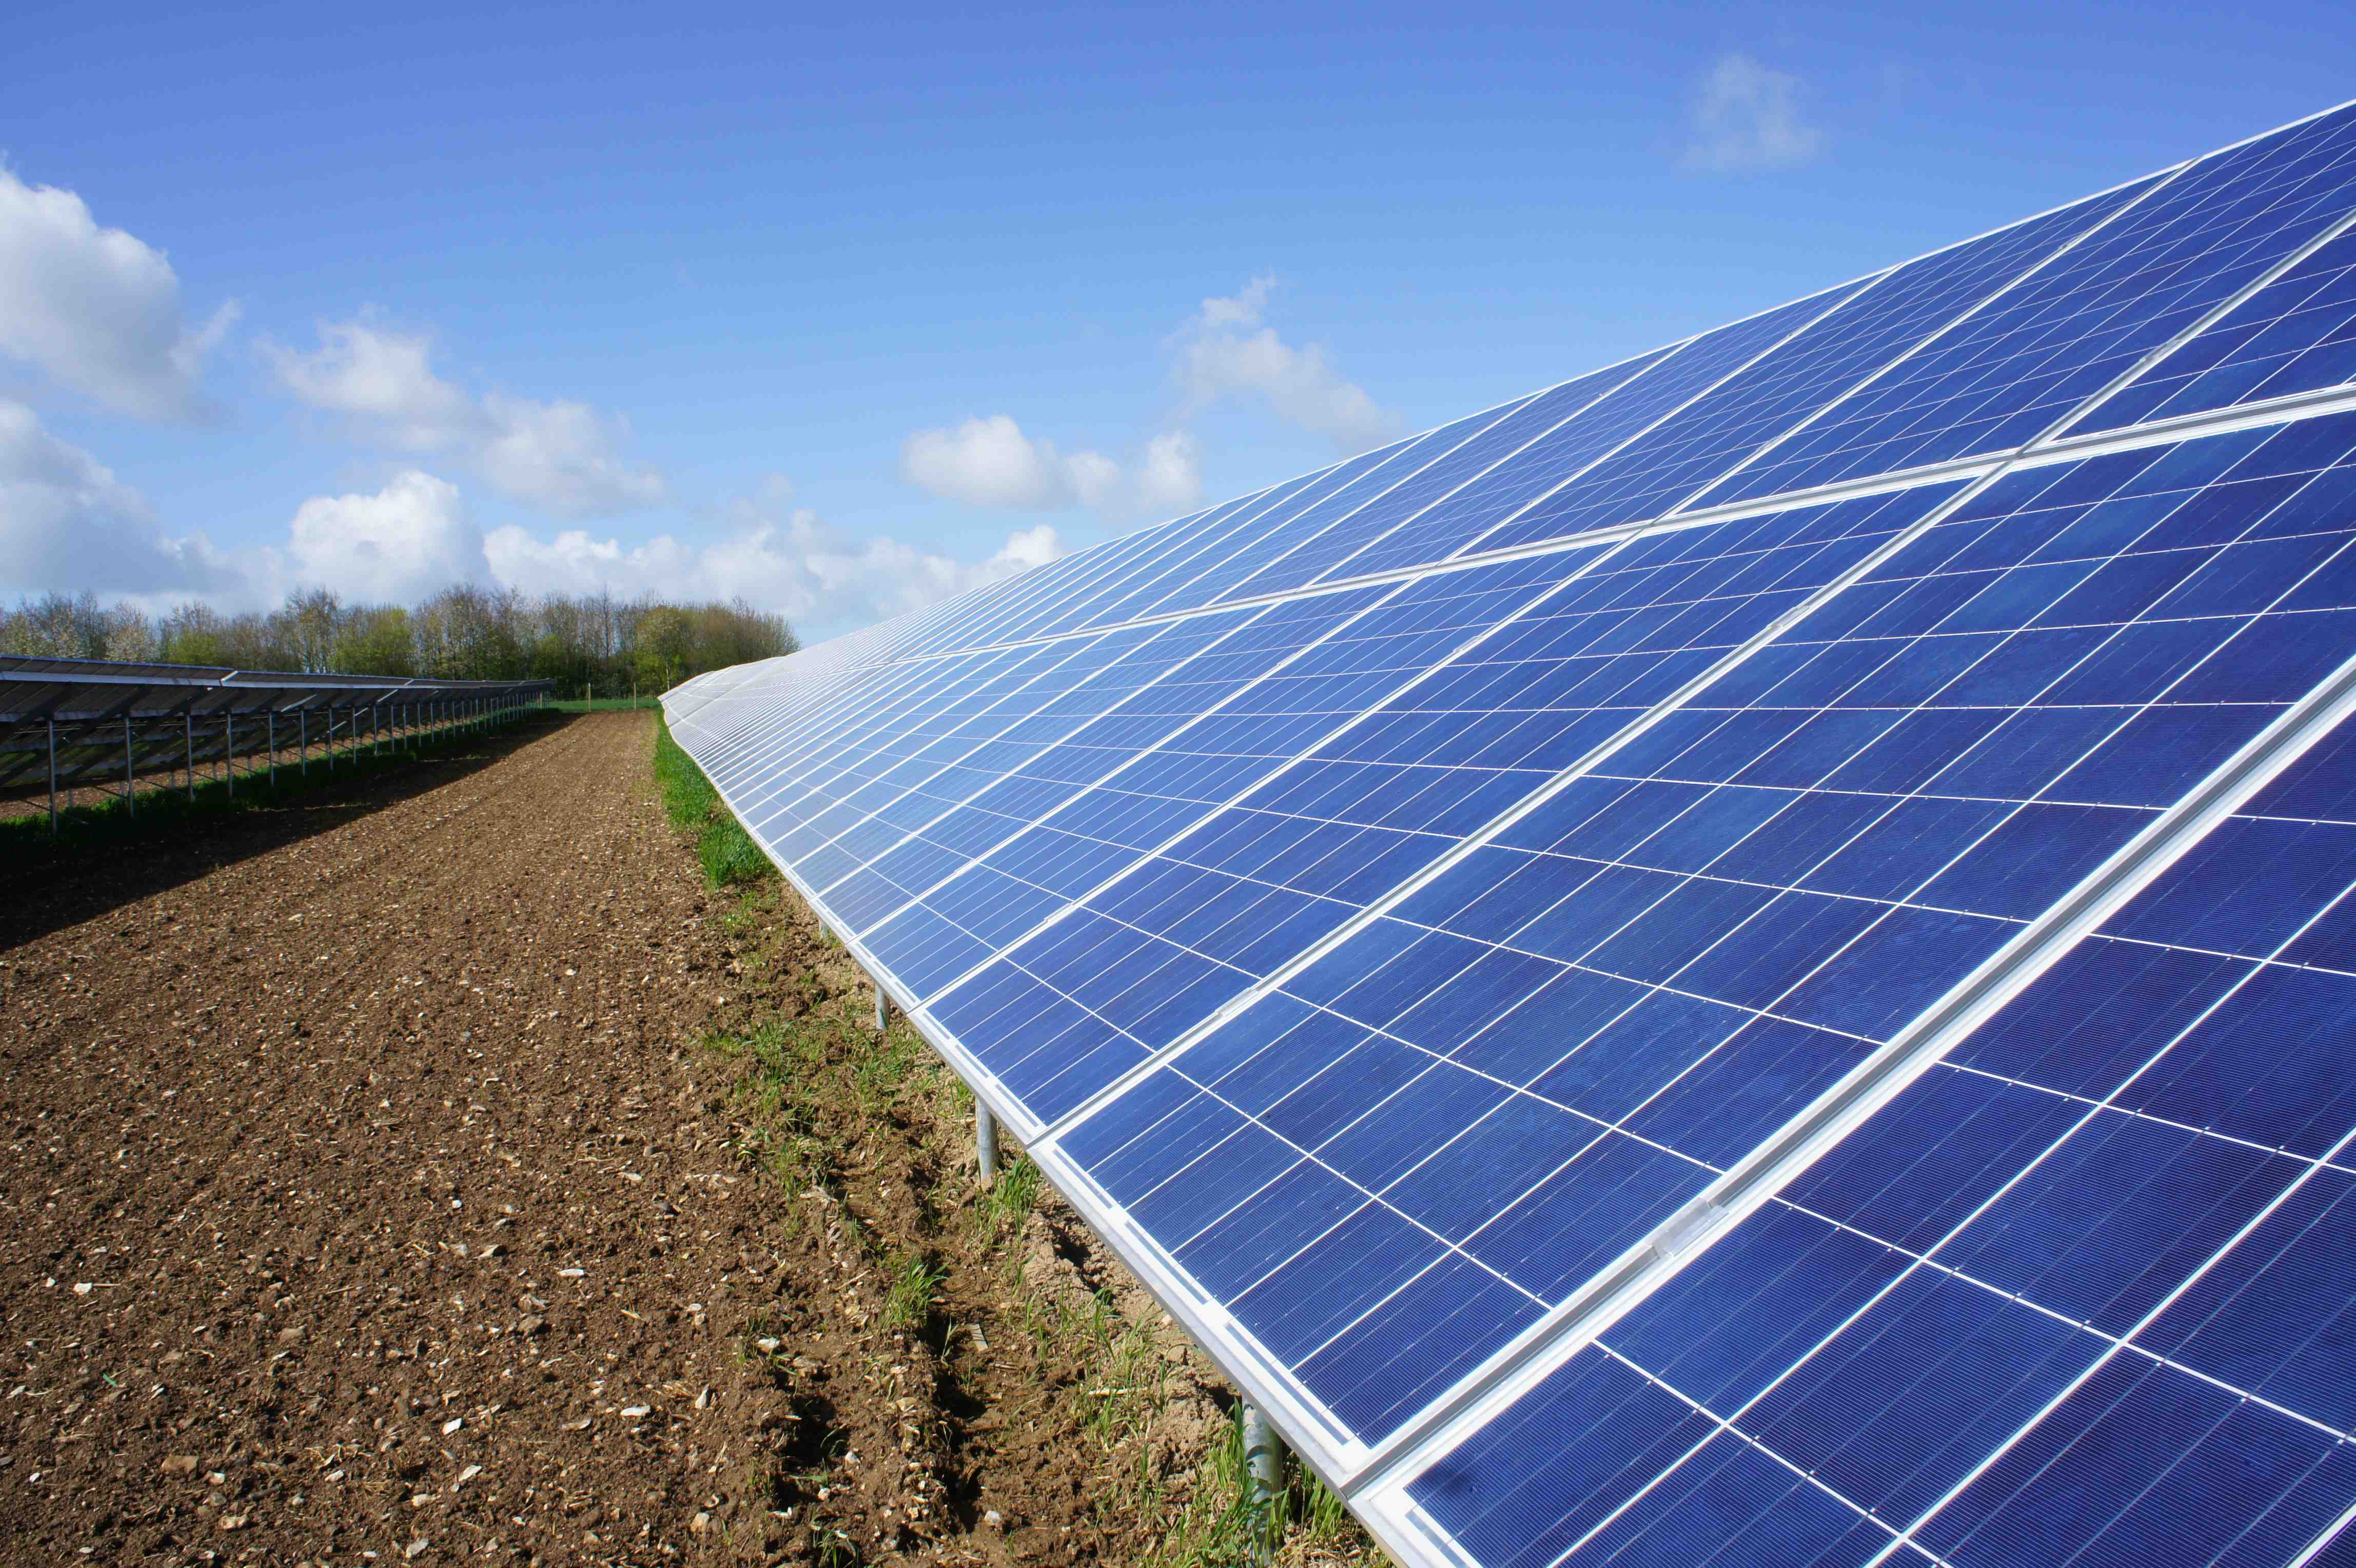 Insolvency Service investigation leads to shut down of solar panel company - Image